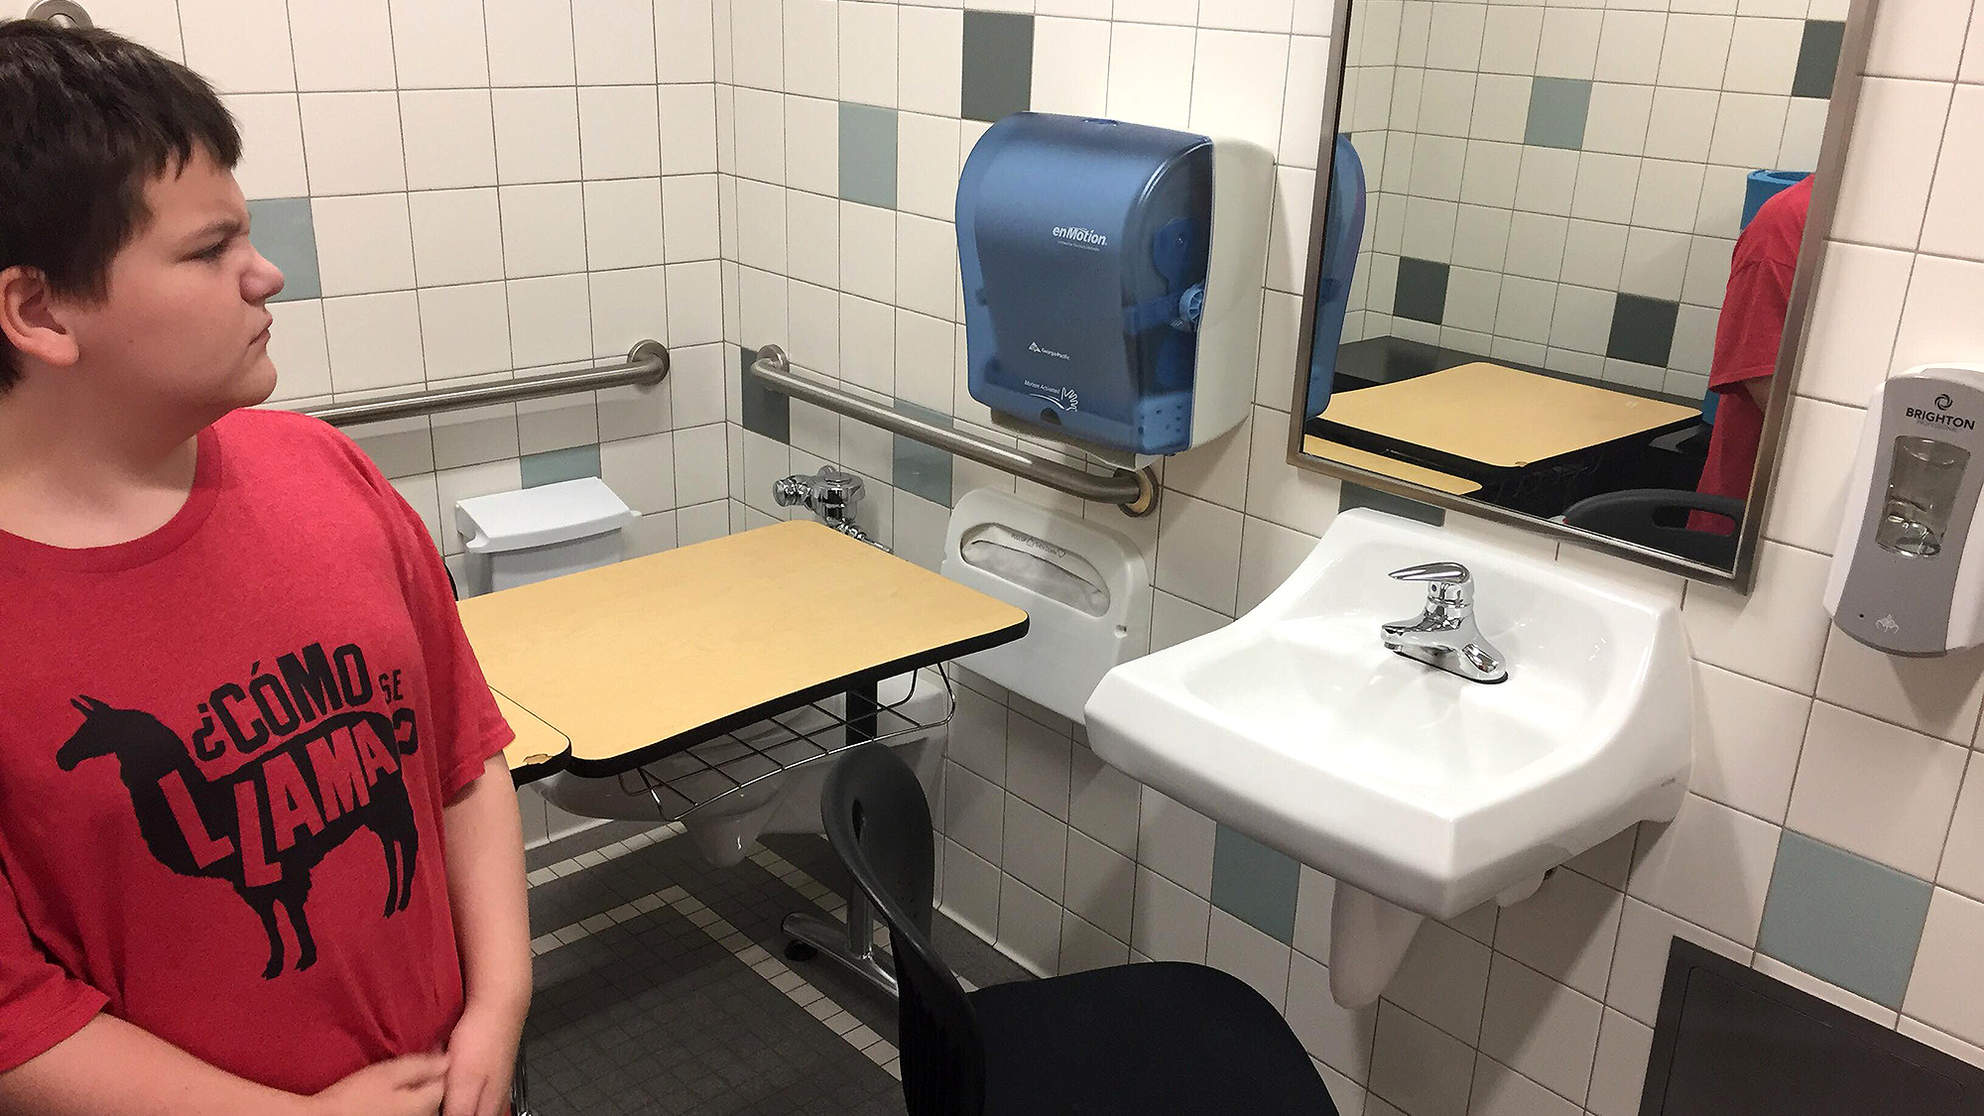 Student with Autism 'Embarrassed' After Washington Middle School Puts His Desk in the Bathroom